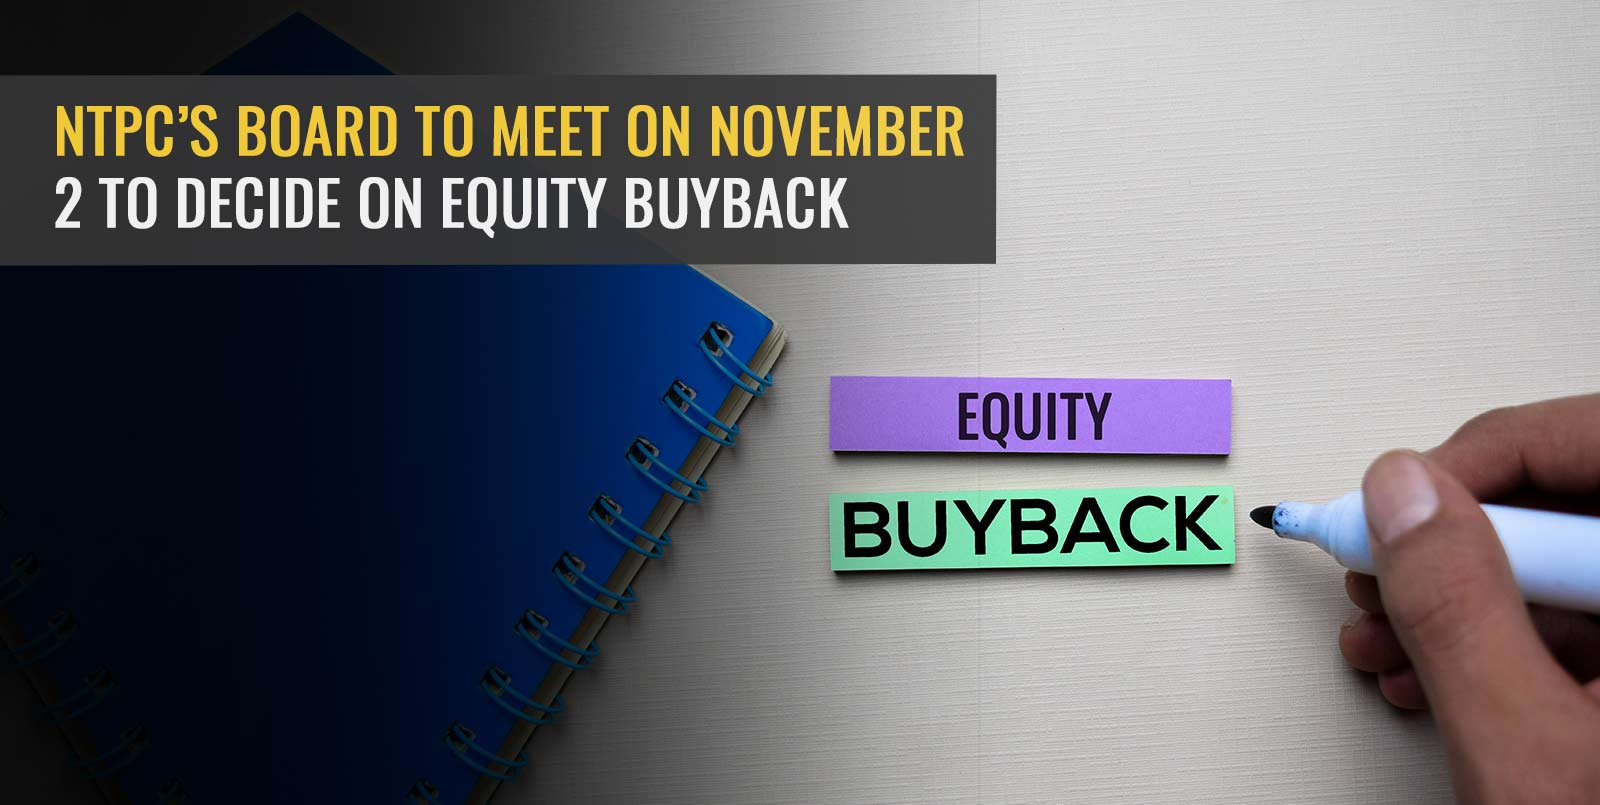 NTPC's Board to Meet on November 2 To Decide On Equity Buyback